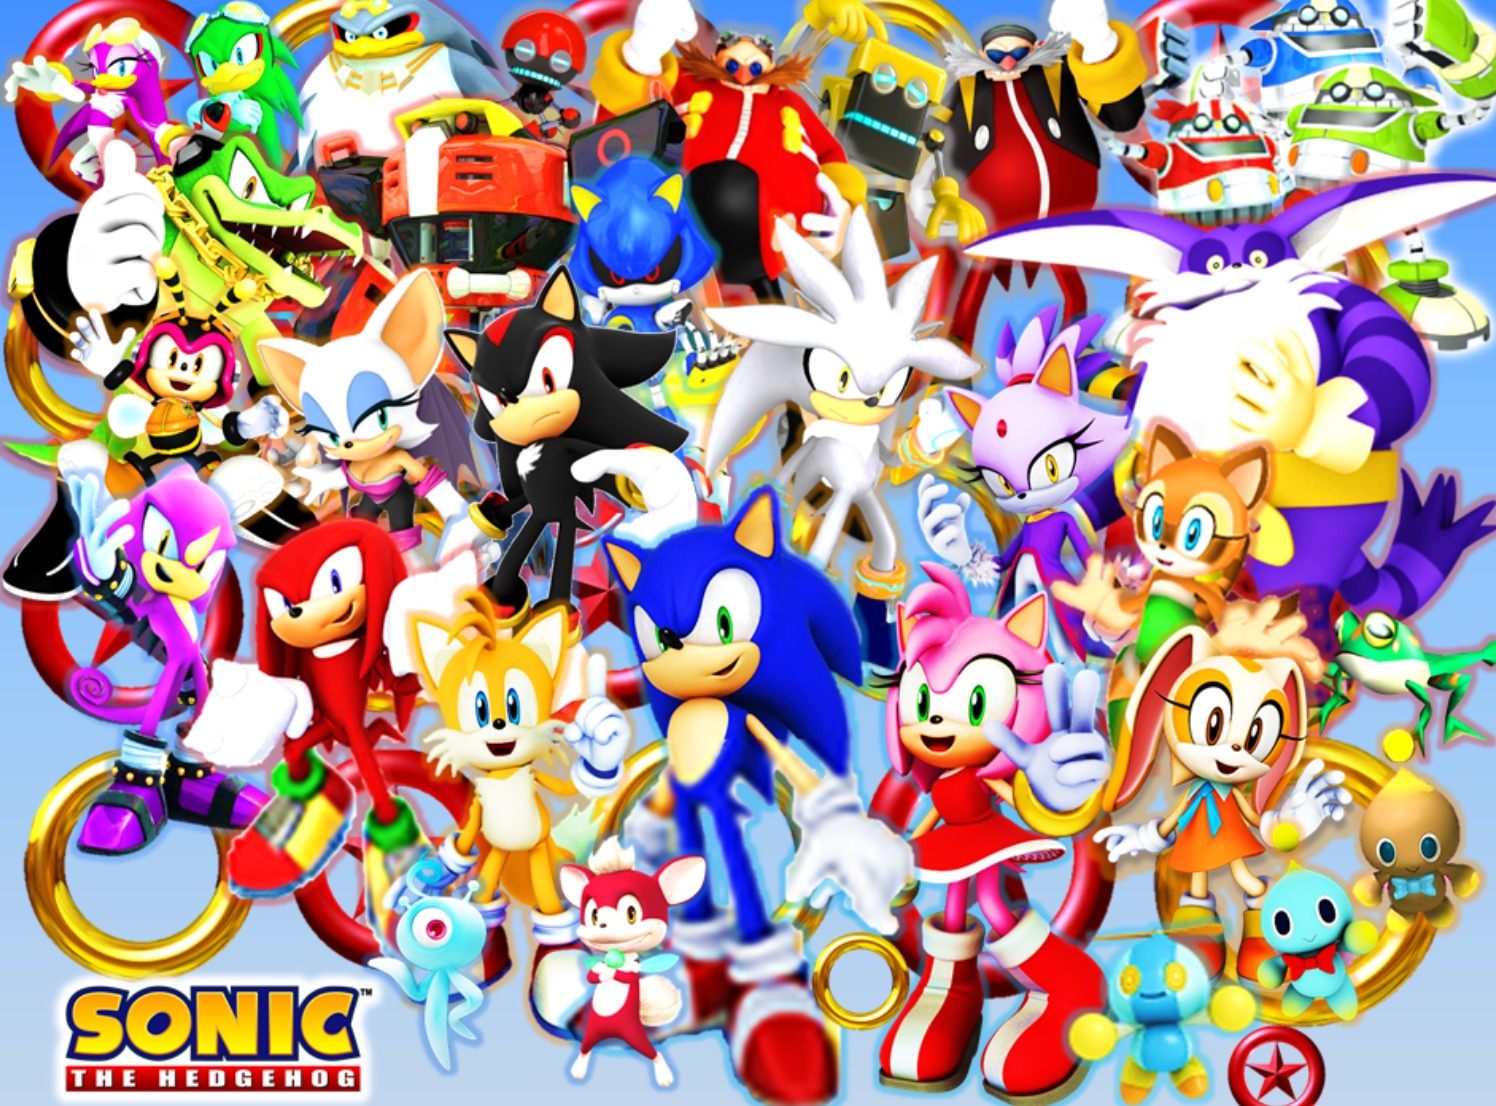 Am I the only one who enjoys all the Sonic characters/ why does the fanbase complain about them